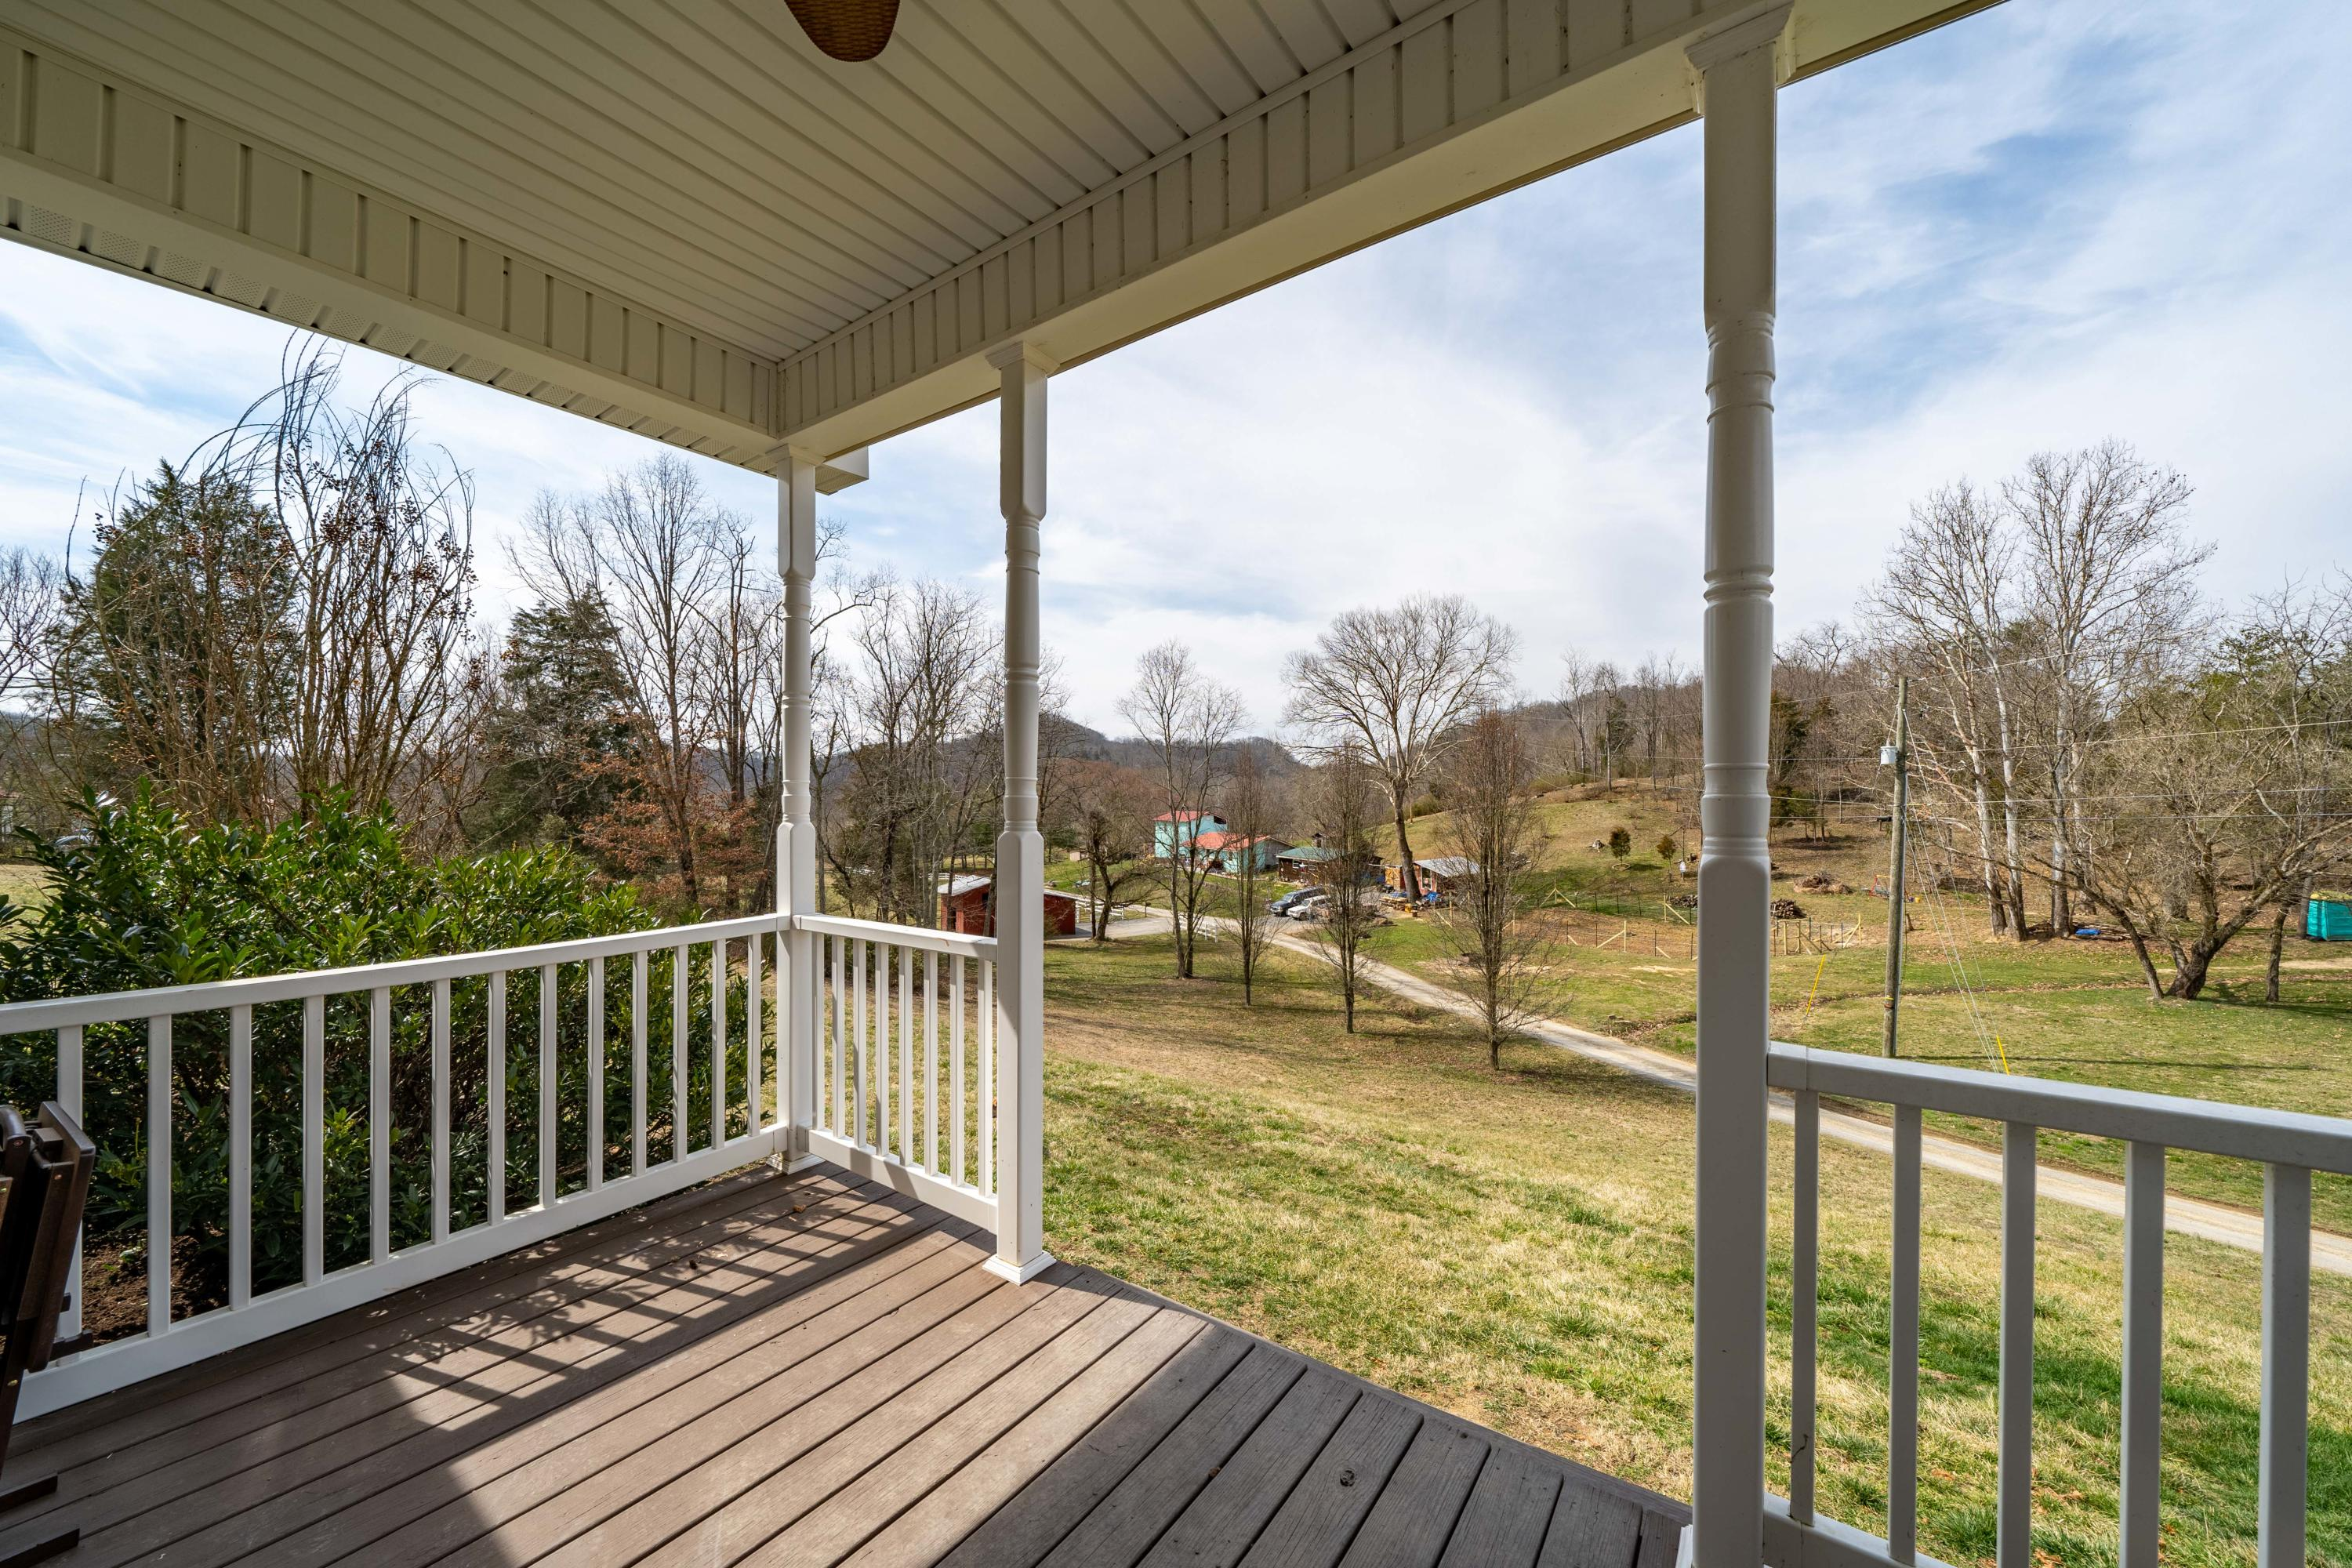 117 Dickerson Road, Church Hill, Tennessee 37642, 3 Bedrooms Bedrooms, ,1 BathroomBathrooms,Single Family,For Sale,117 Dickerson Road,1,9919365